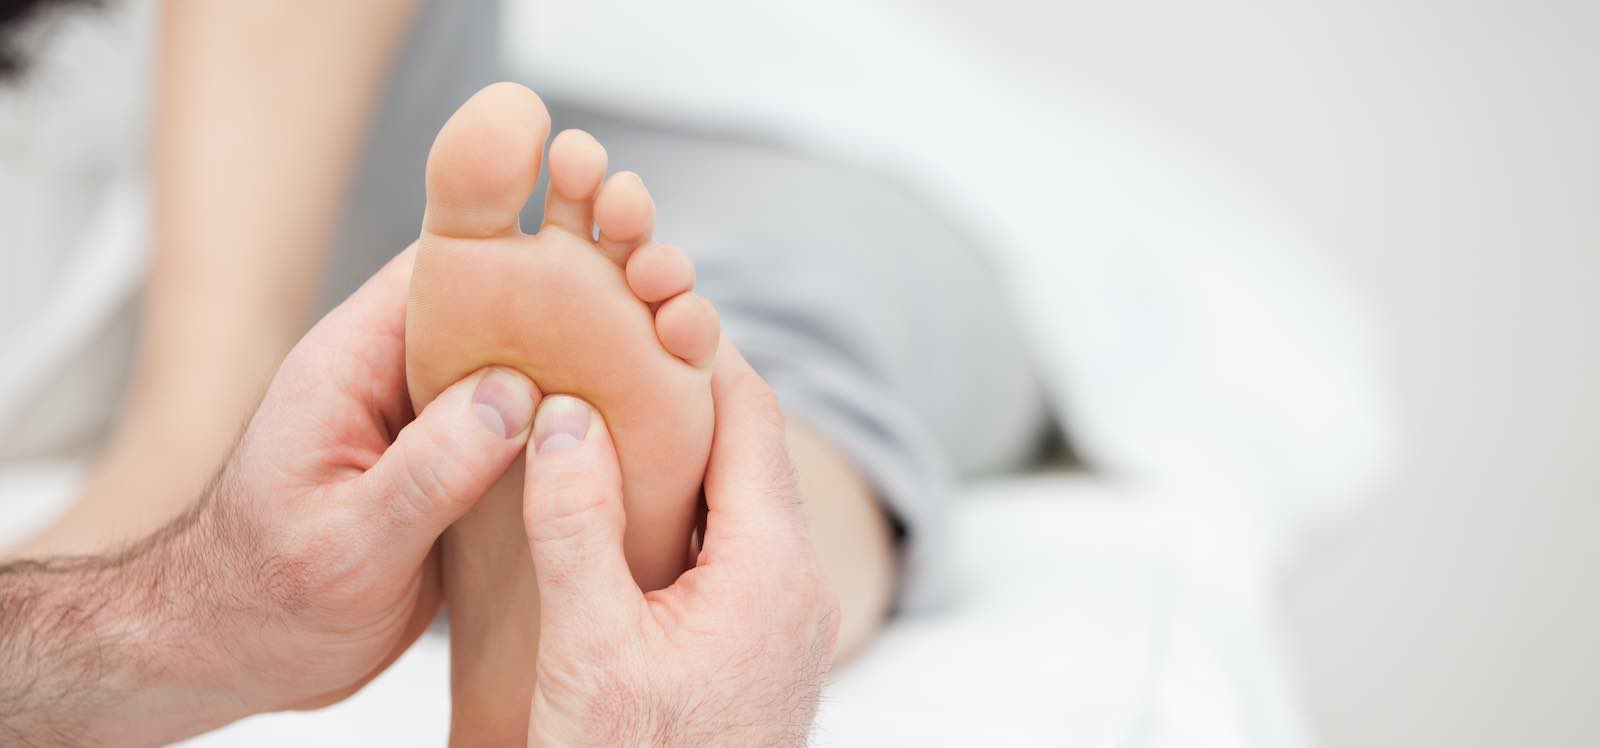 Foot care tips for when you're standing or walking all day